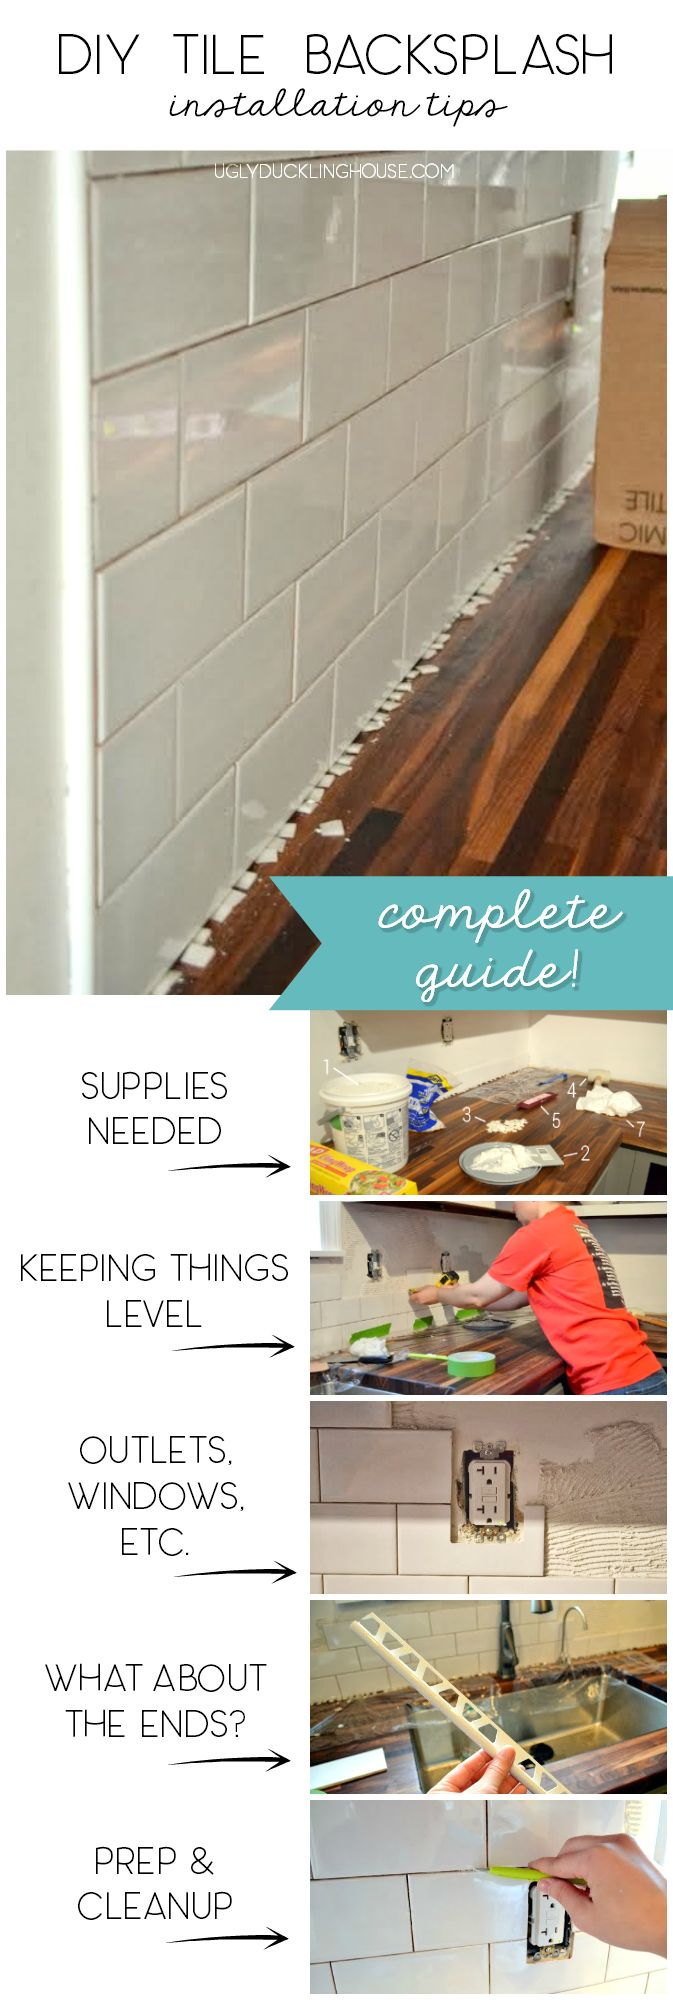 How to do tile backsplash